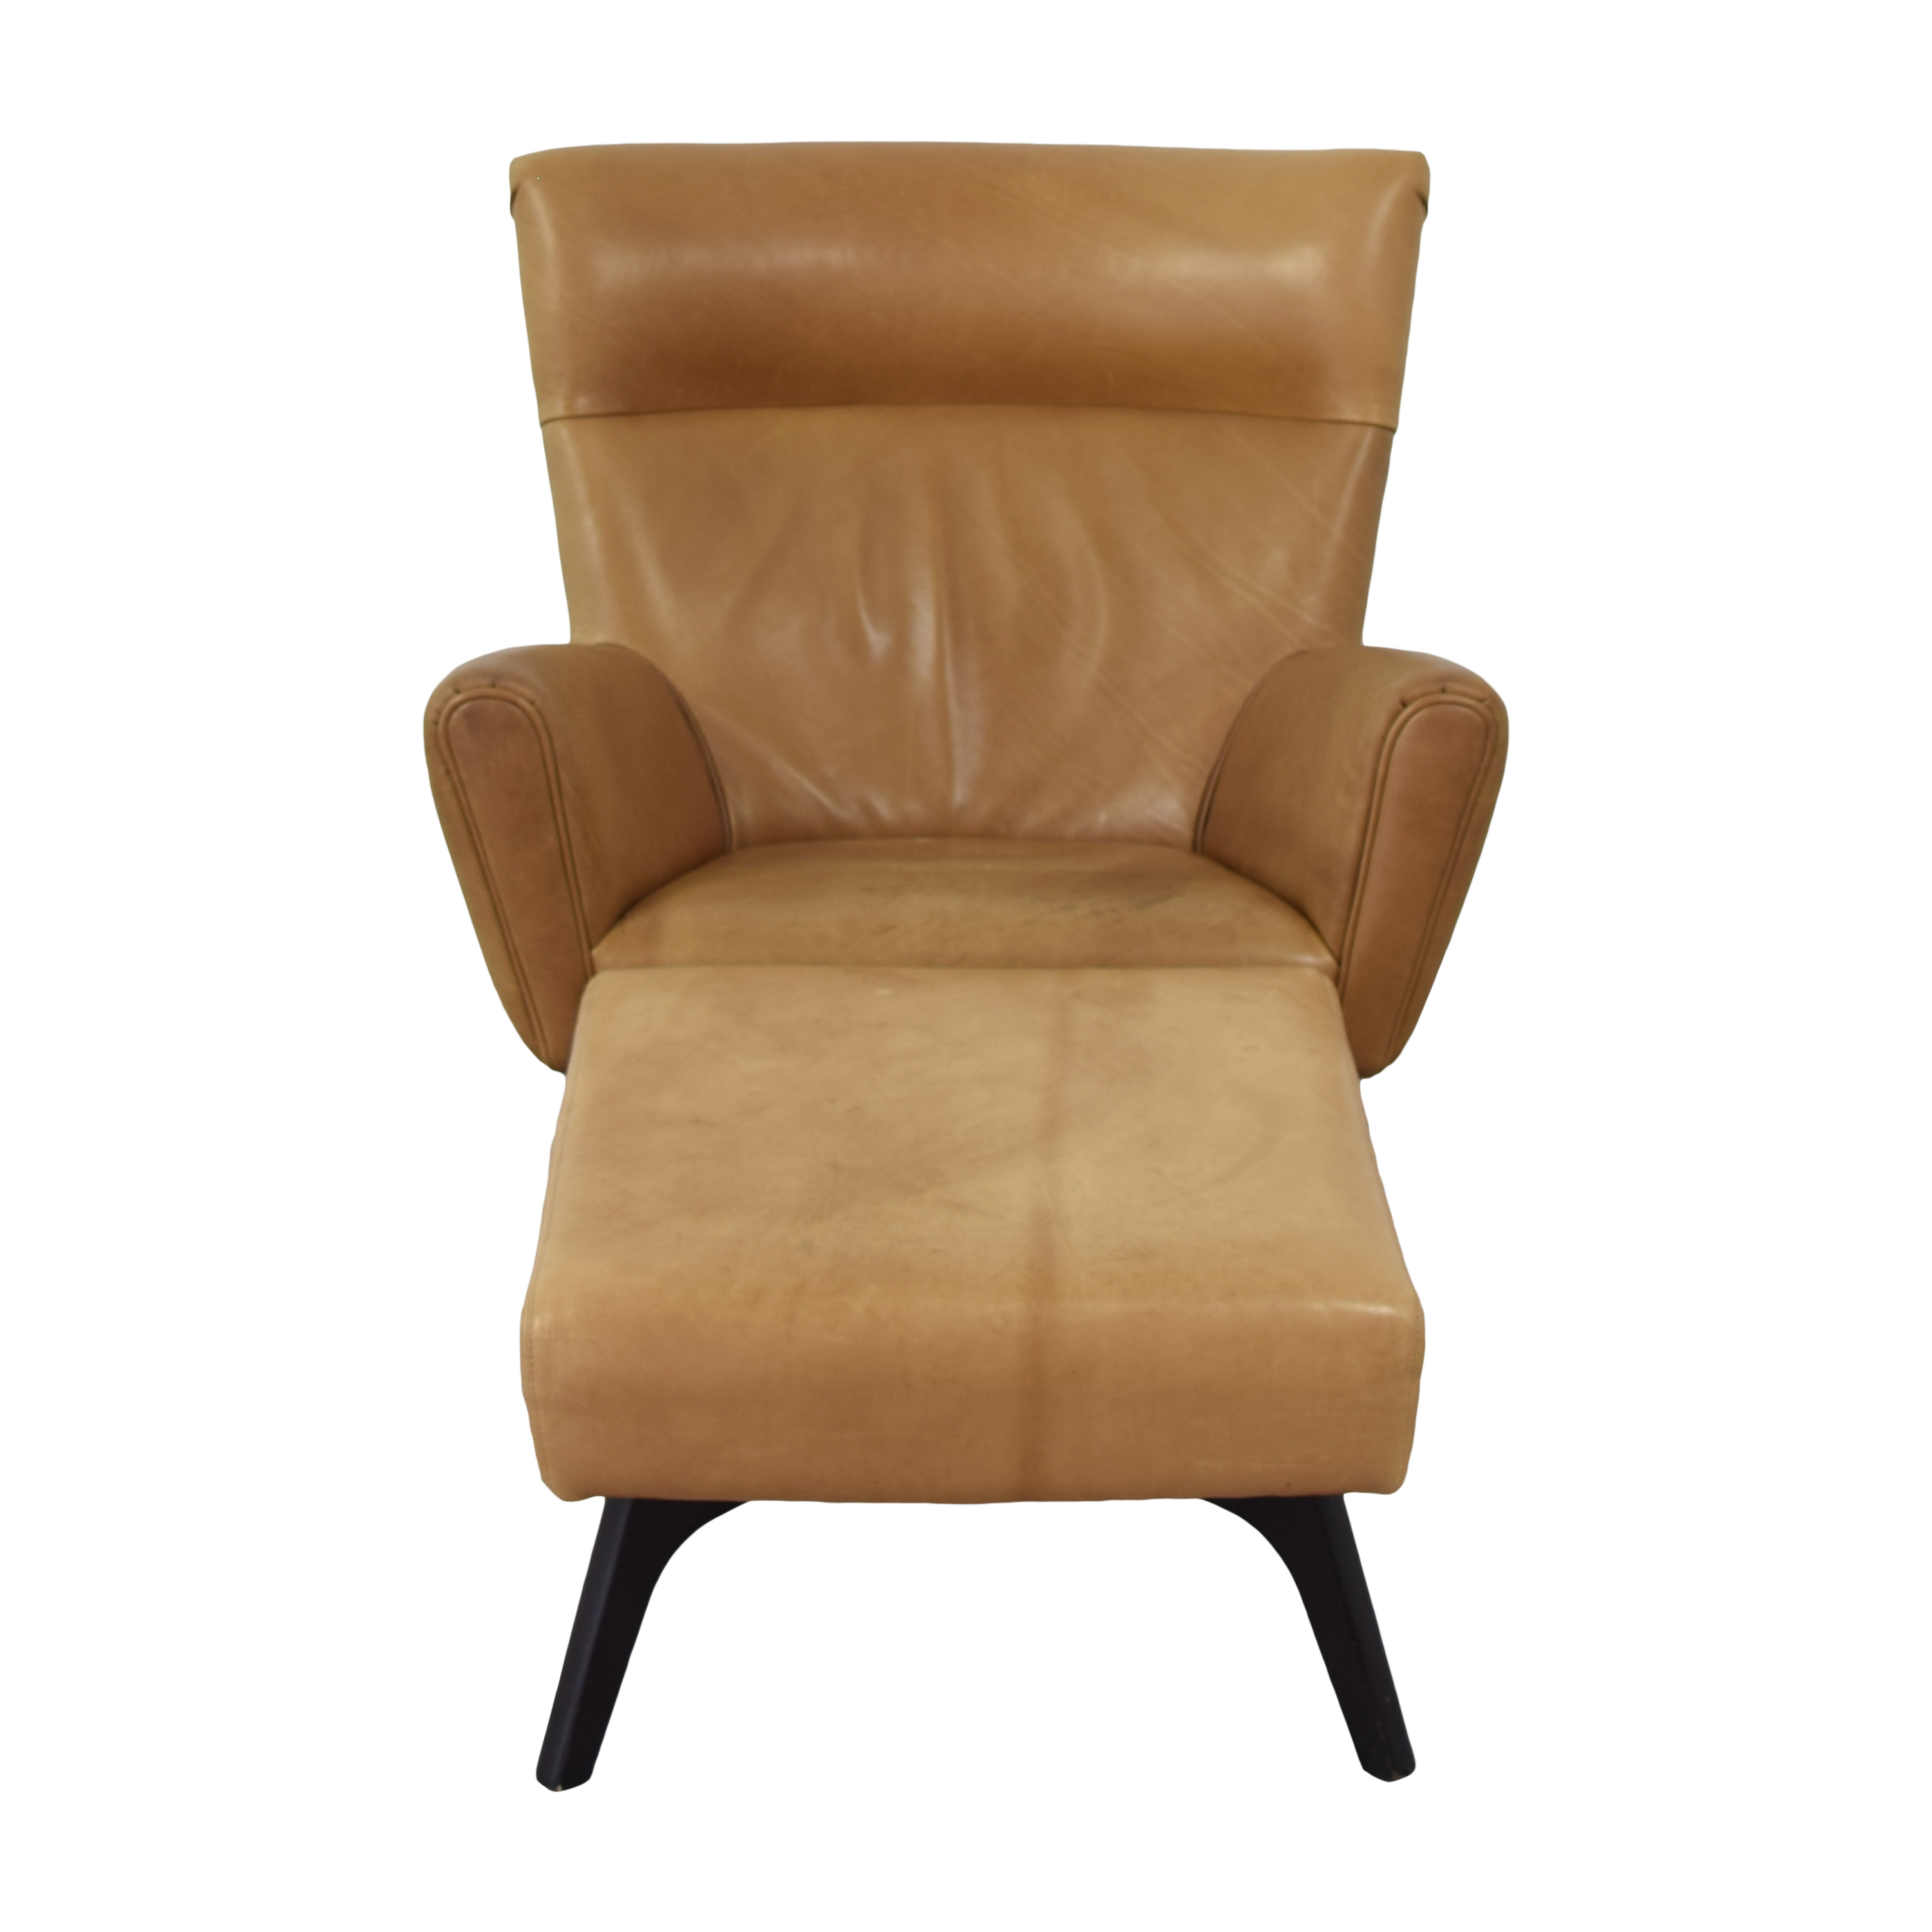 shop Room & Board Boden Chair and Ottoman Room & Board Chairs